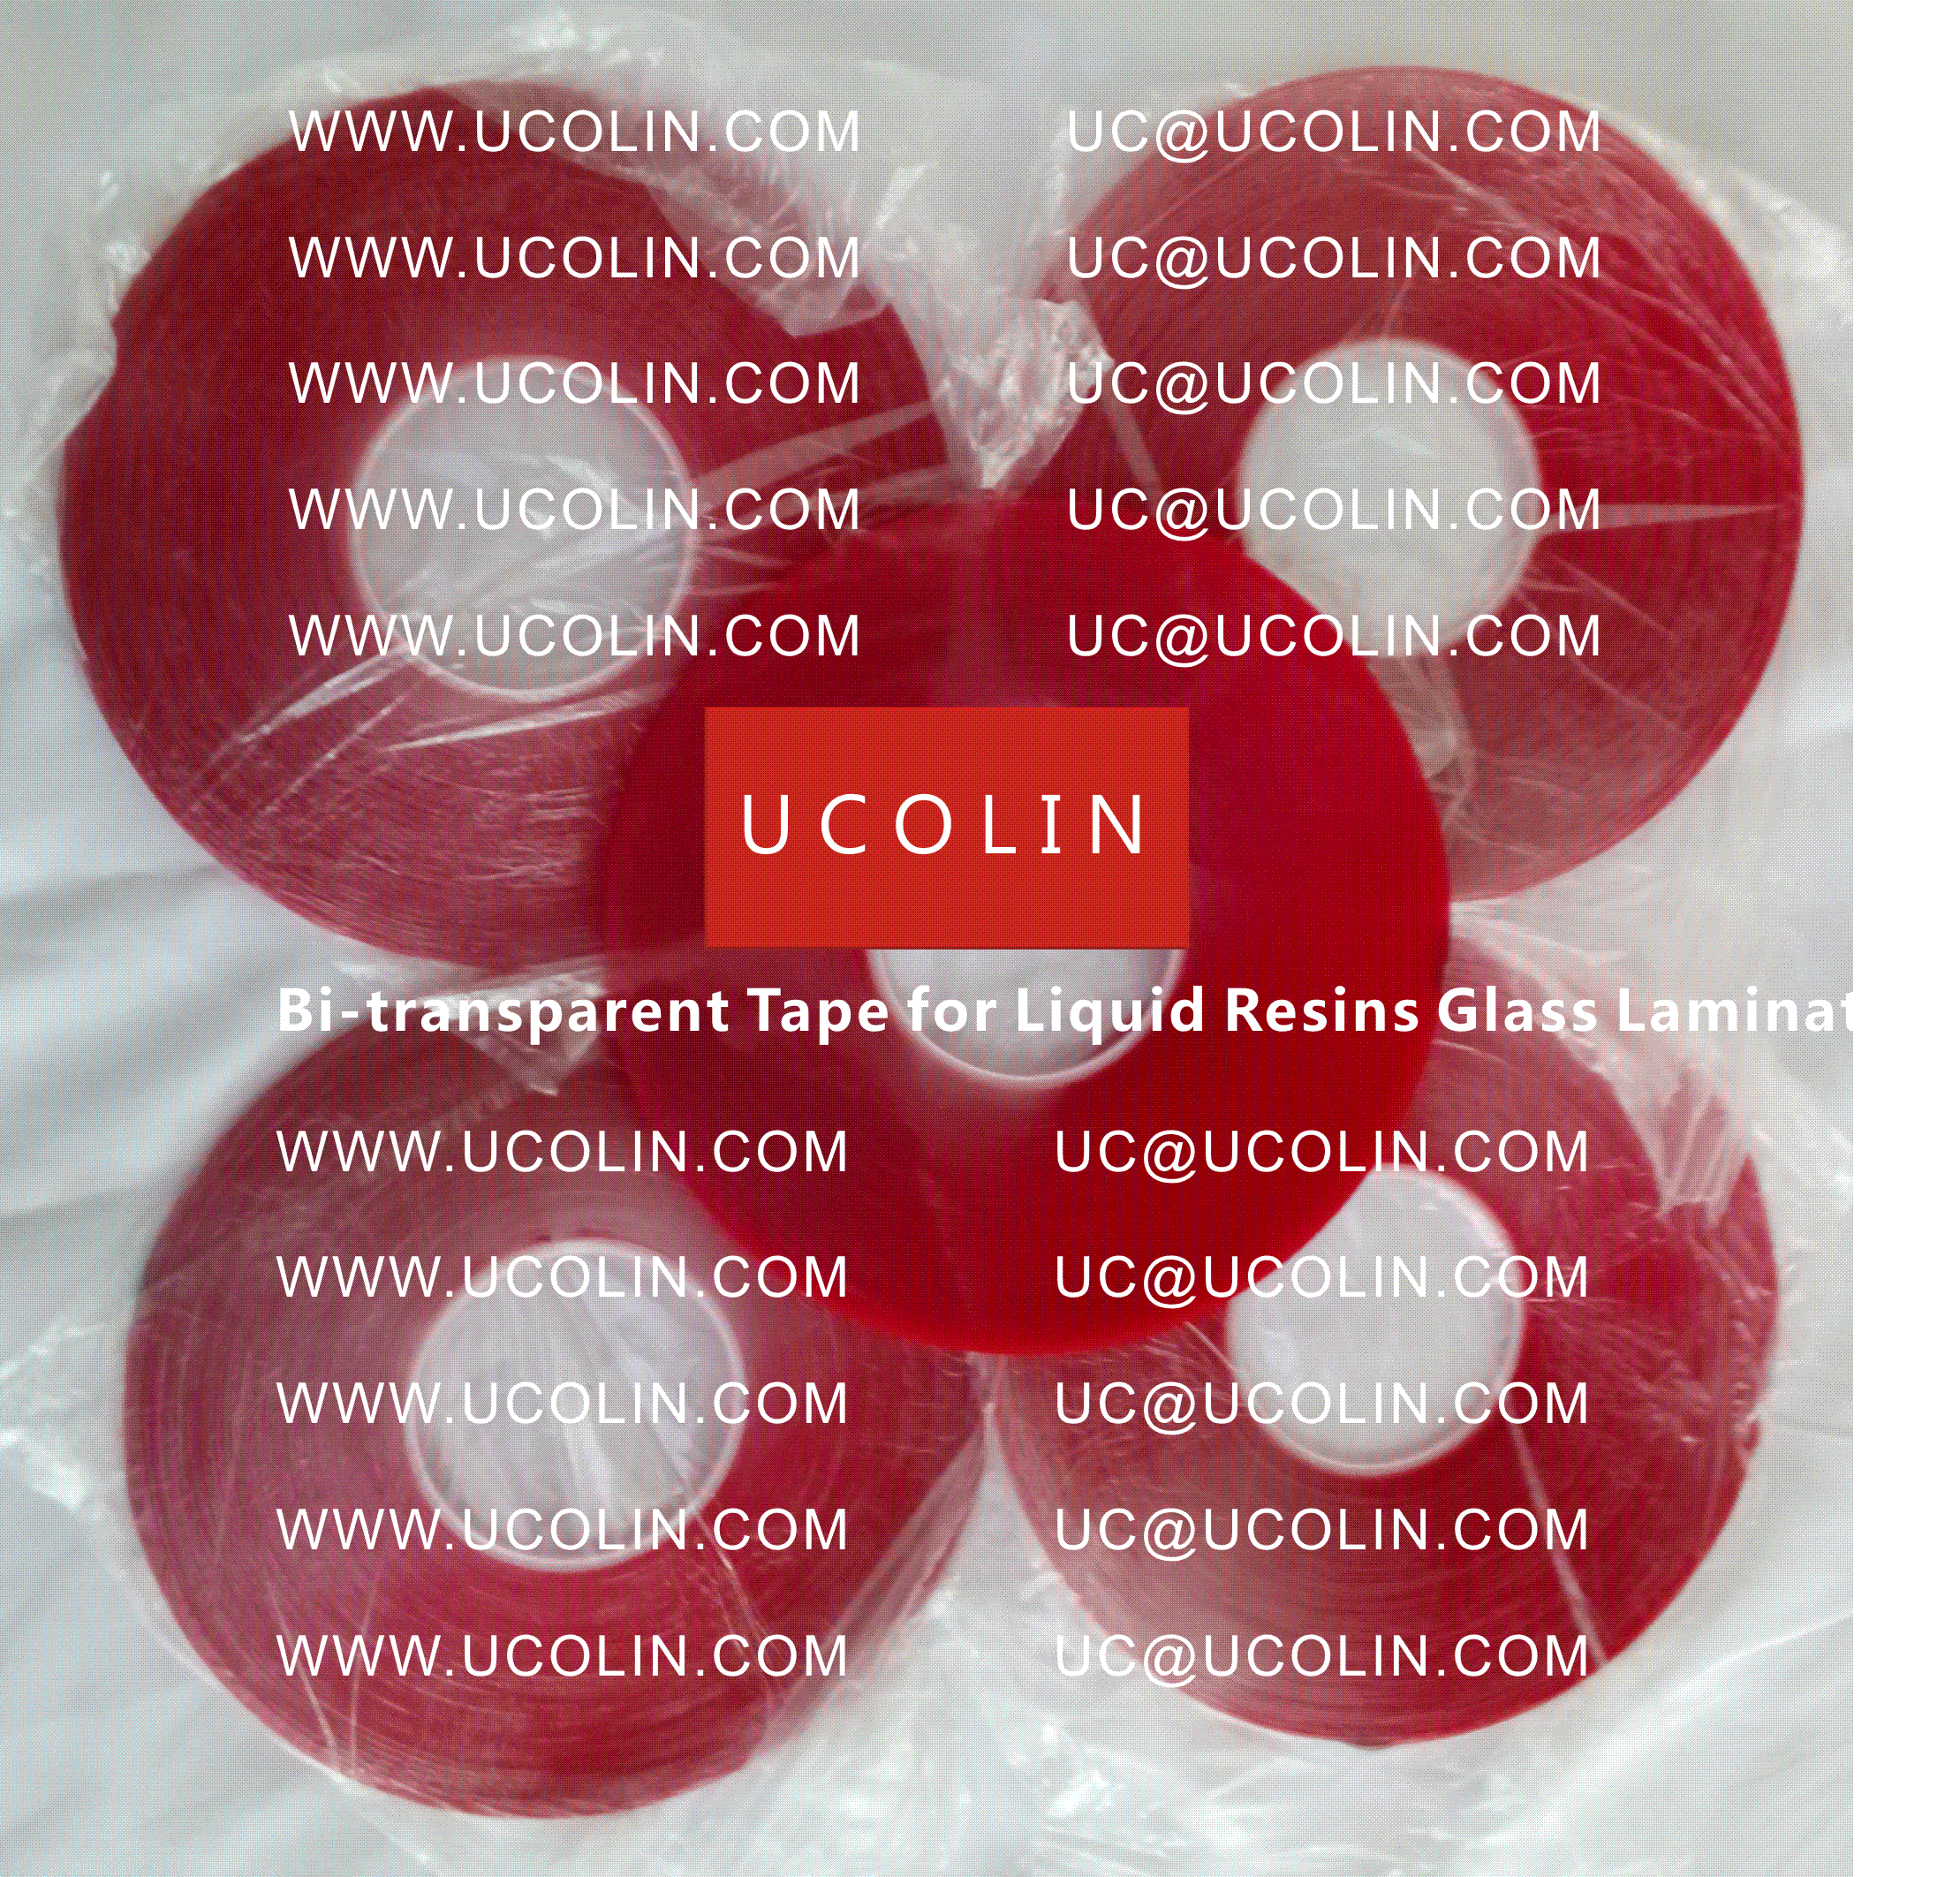 002 Bi-transparent Tape for Liquid Resins for Glass Lamination